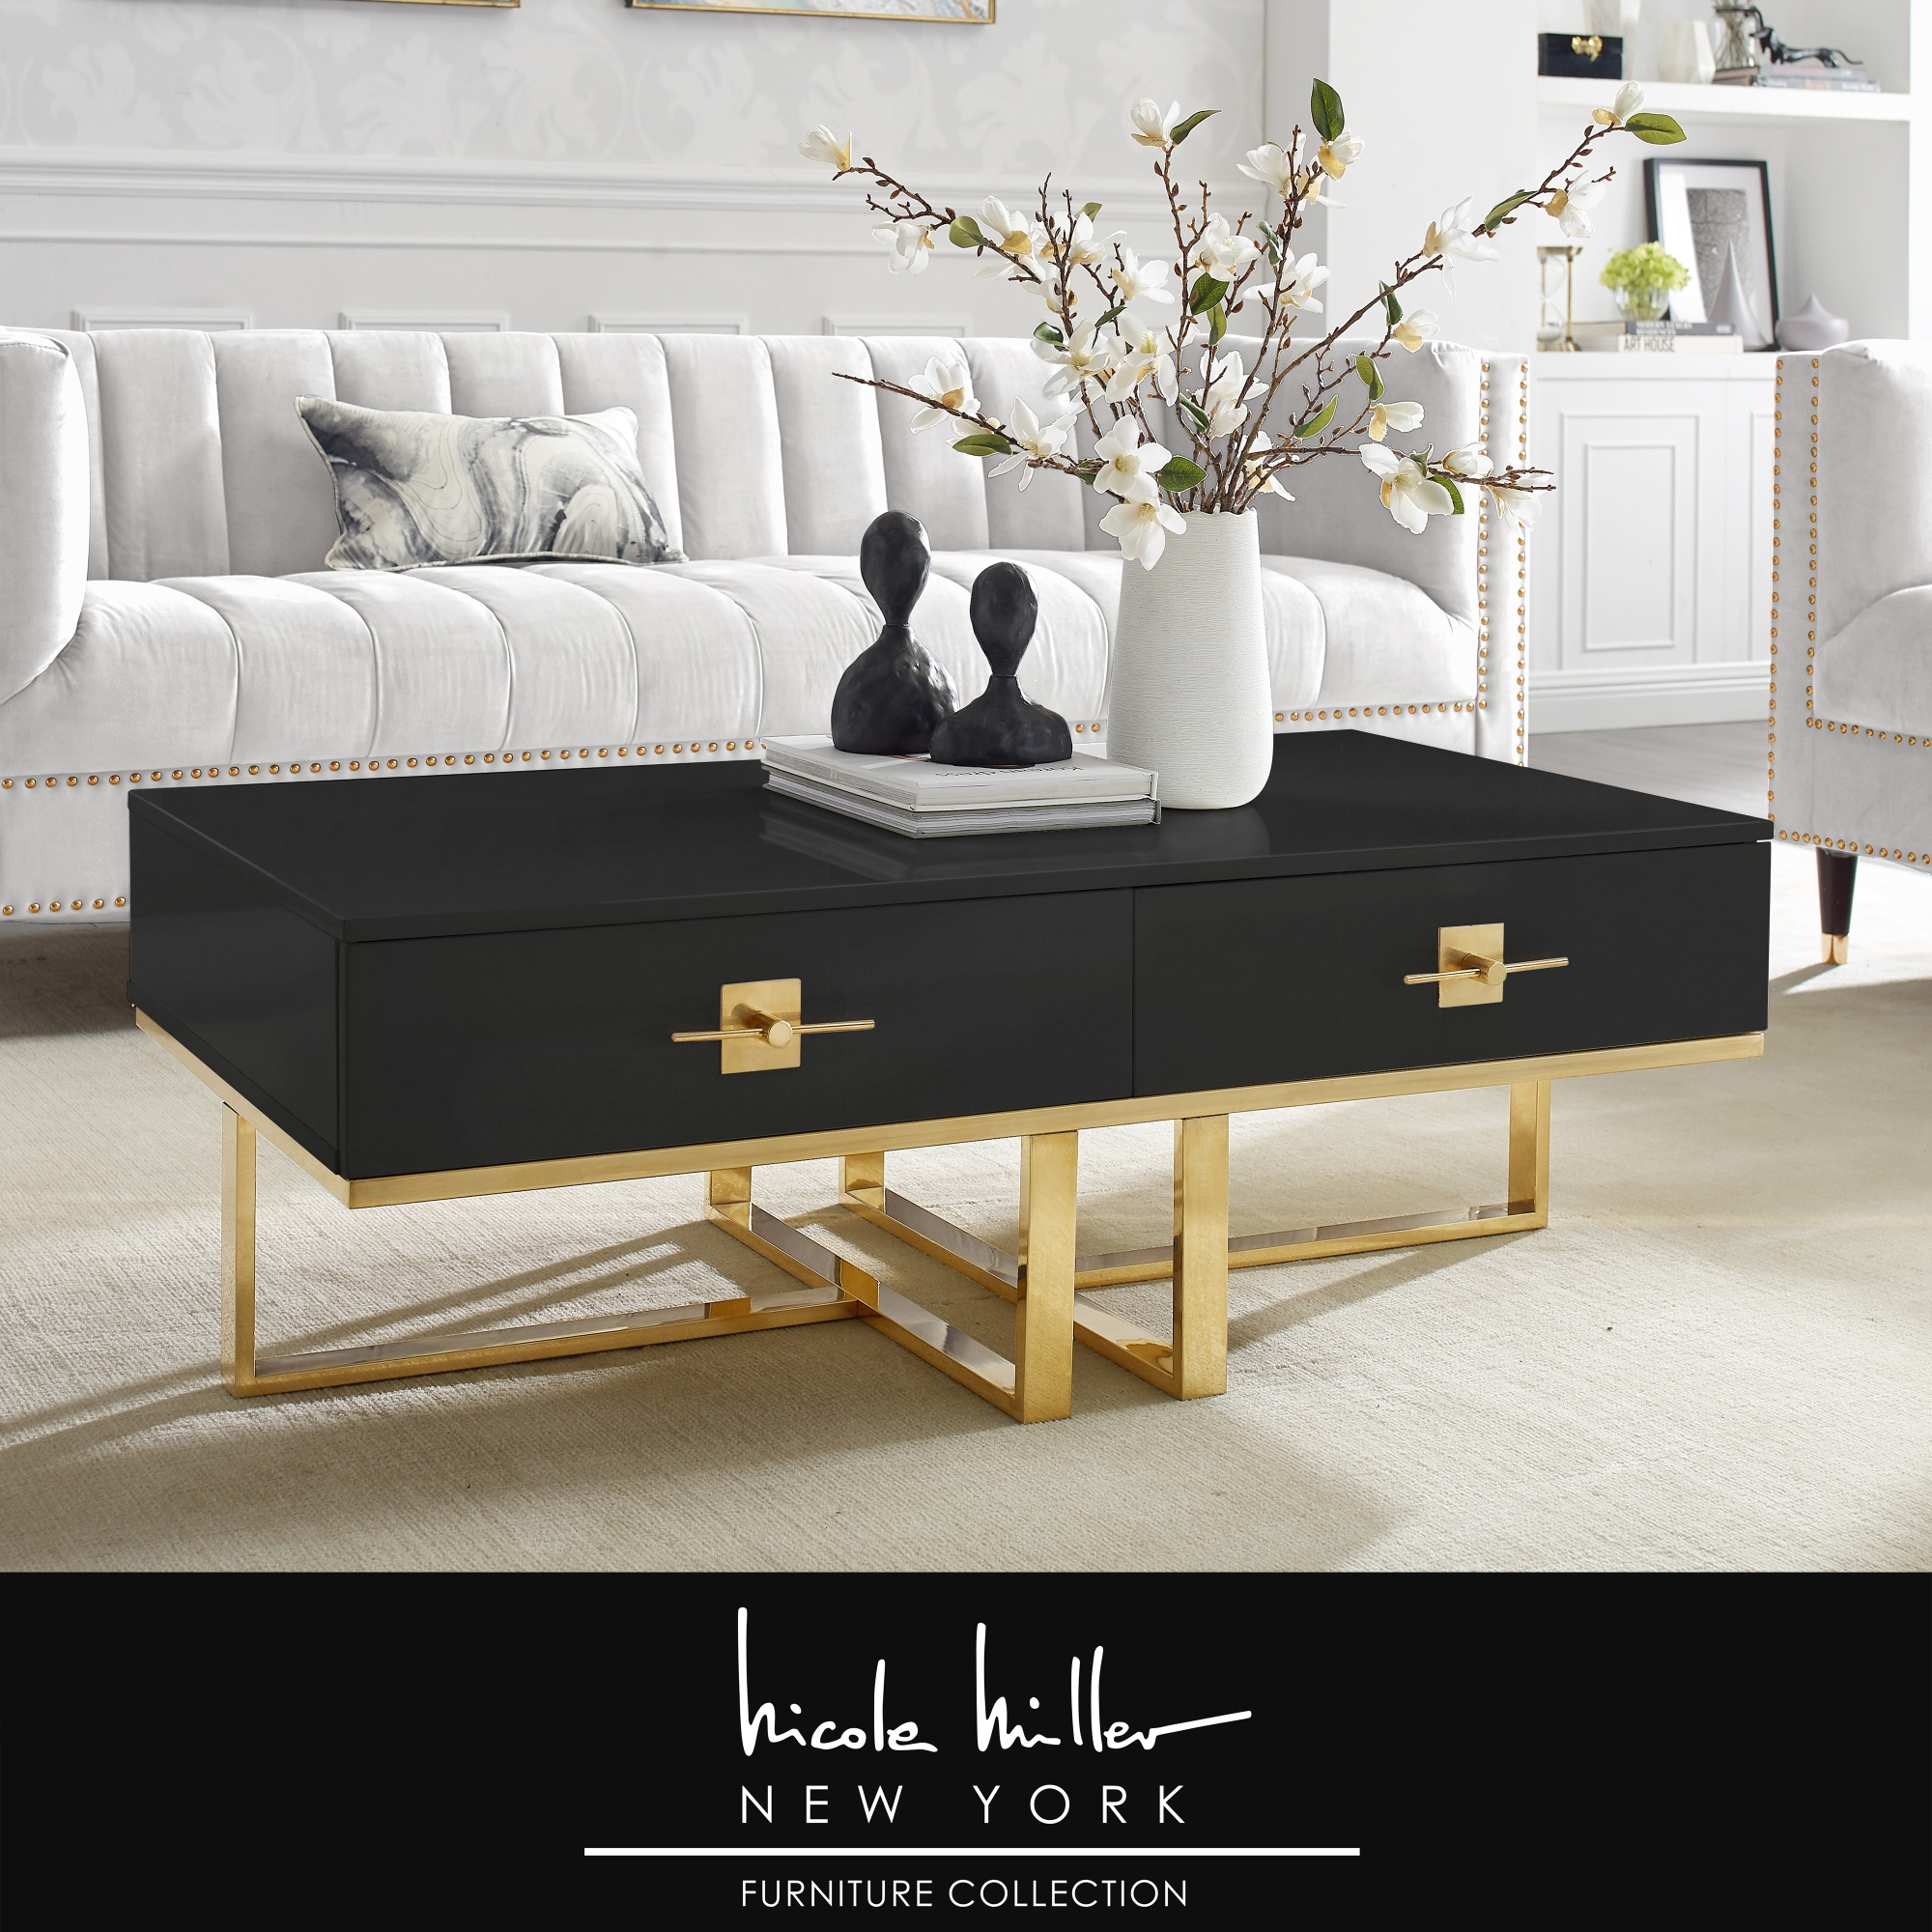 Nicole Miller Black/Gold Coffee Table 2 Drawers Hight Gloss Lacquer Finish